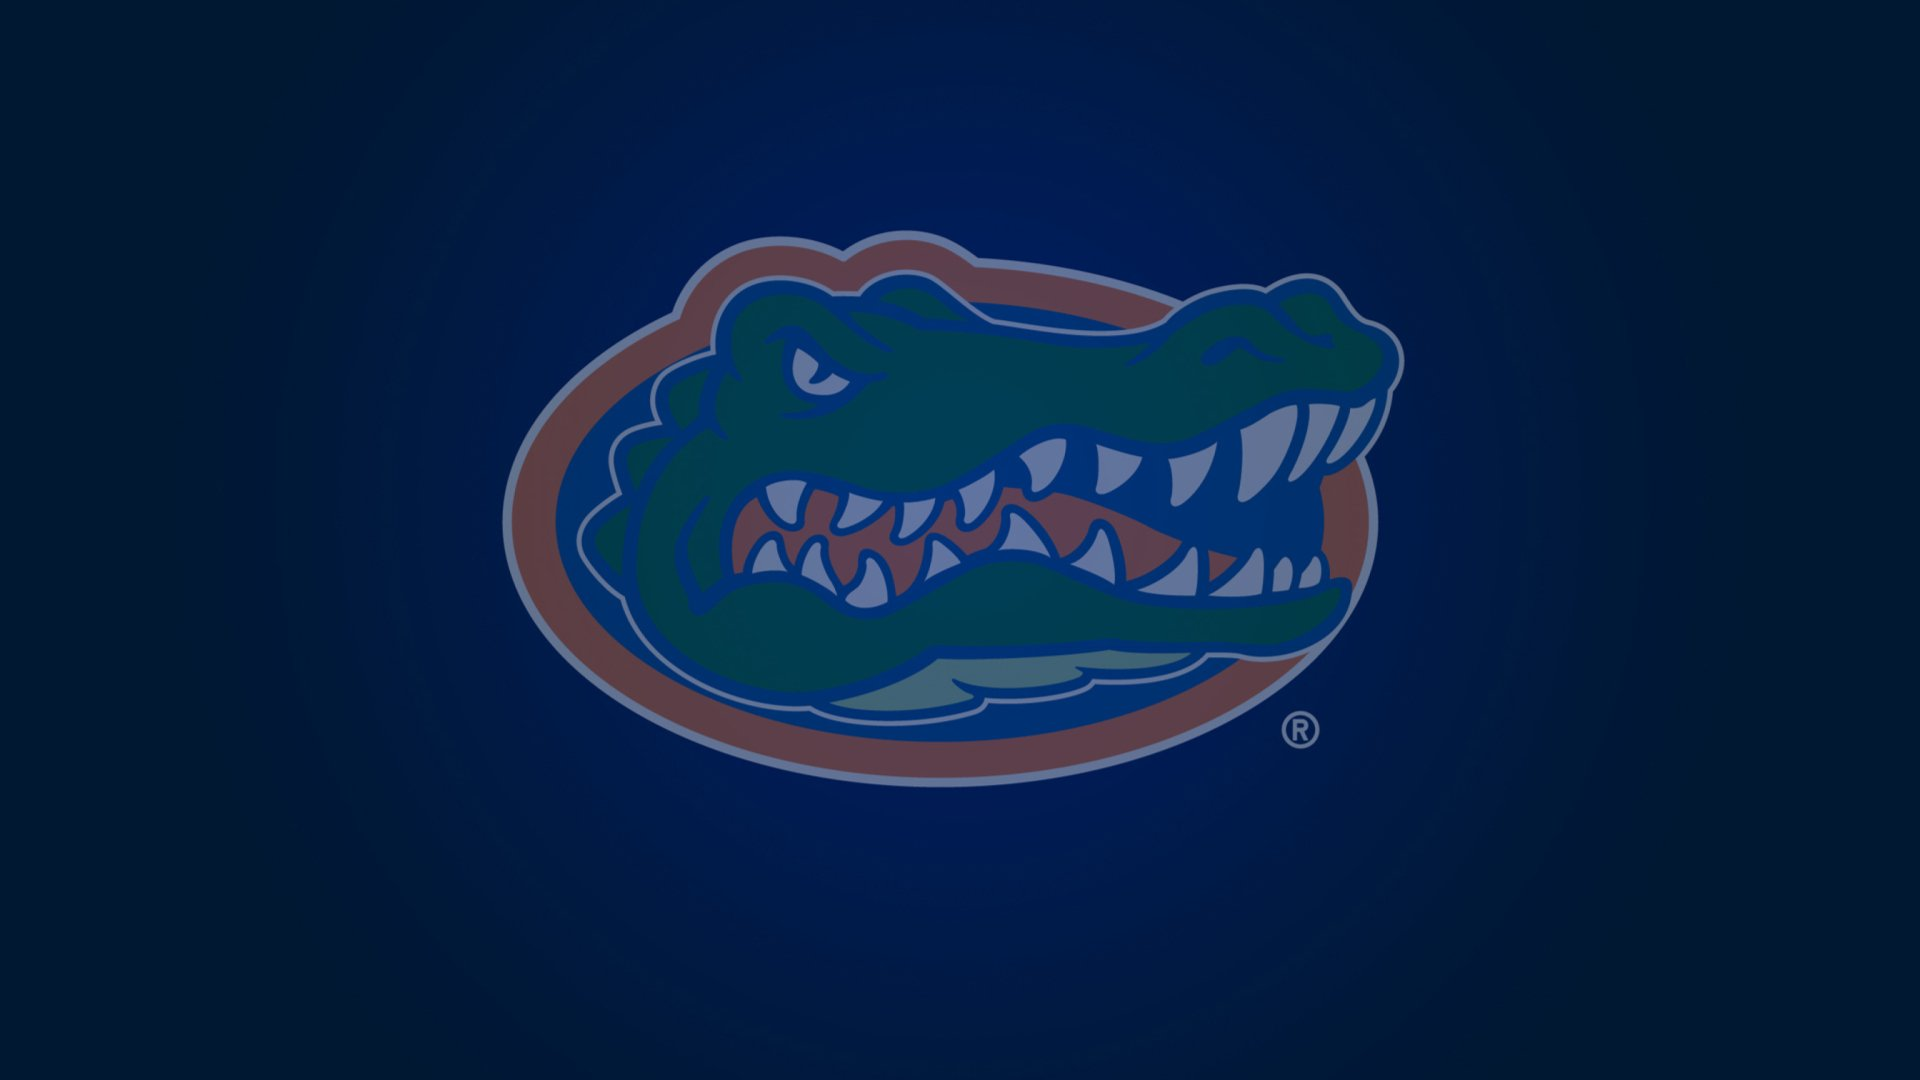 Florida Gators screenshot 1 1920x1080